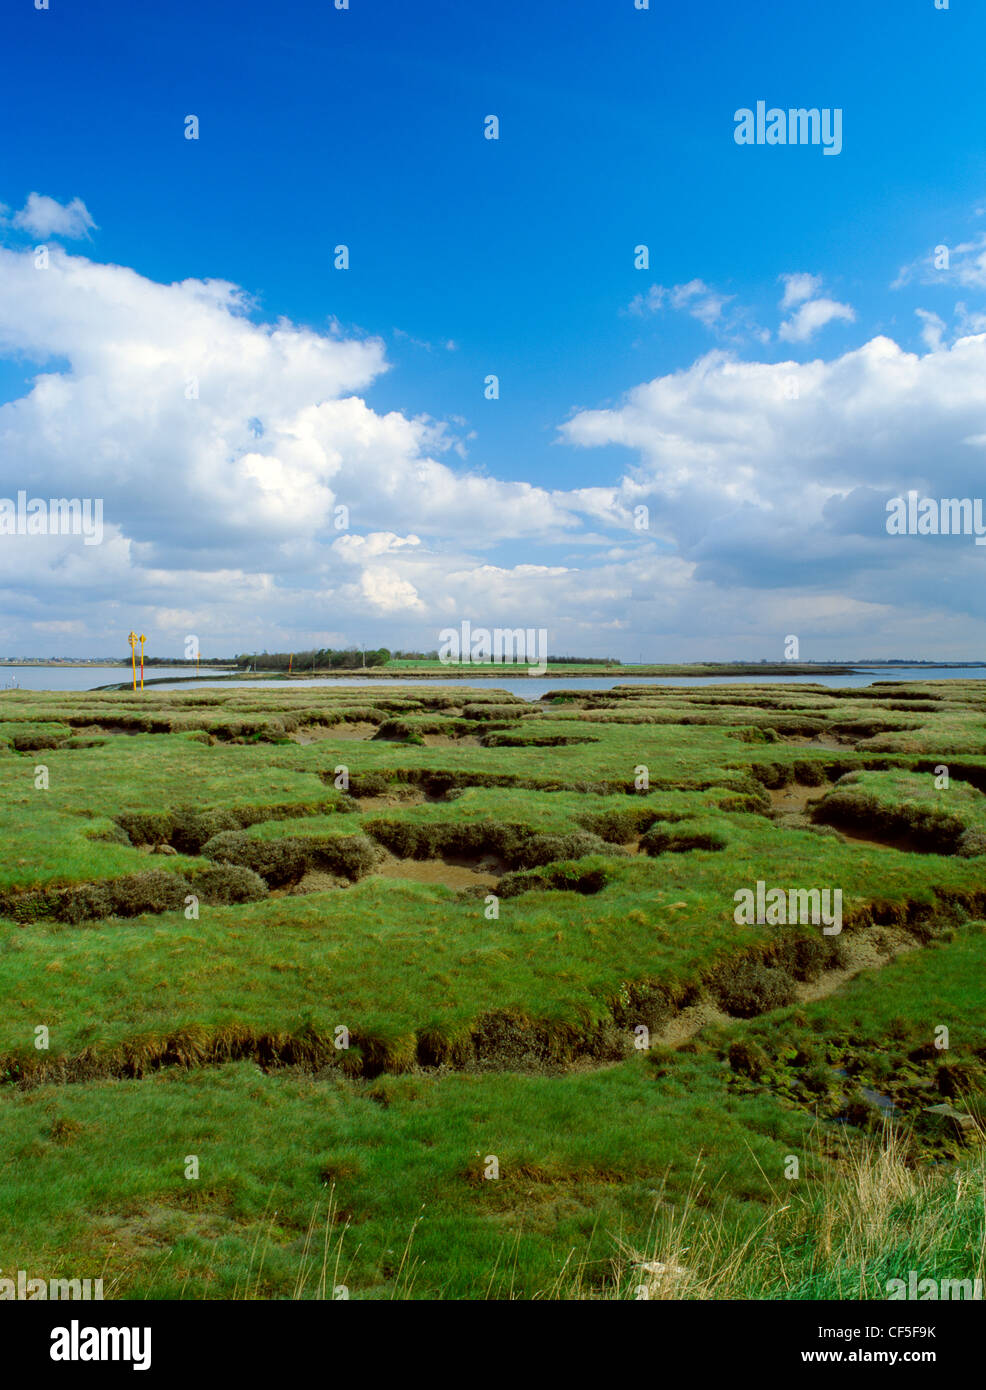 National Trust bird reserve on a tidal island reached by a causeway across the River Pant. The heroic Anglo-Saxon - Stock Image